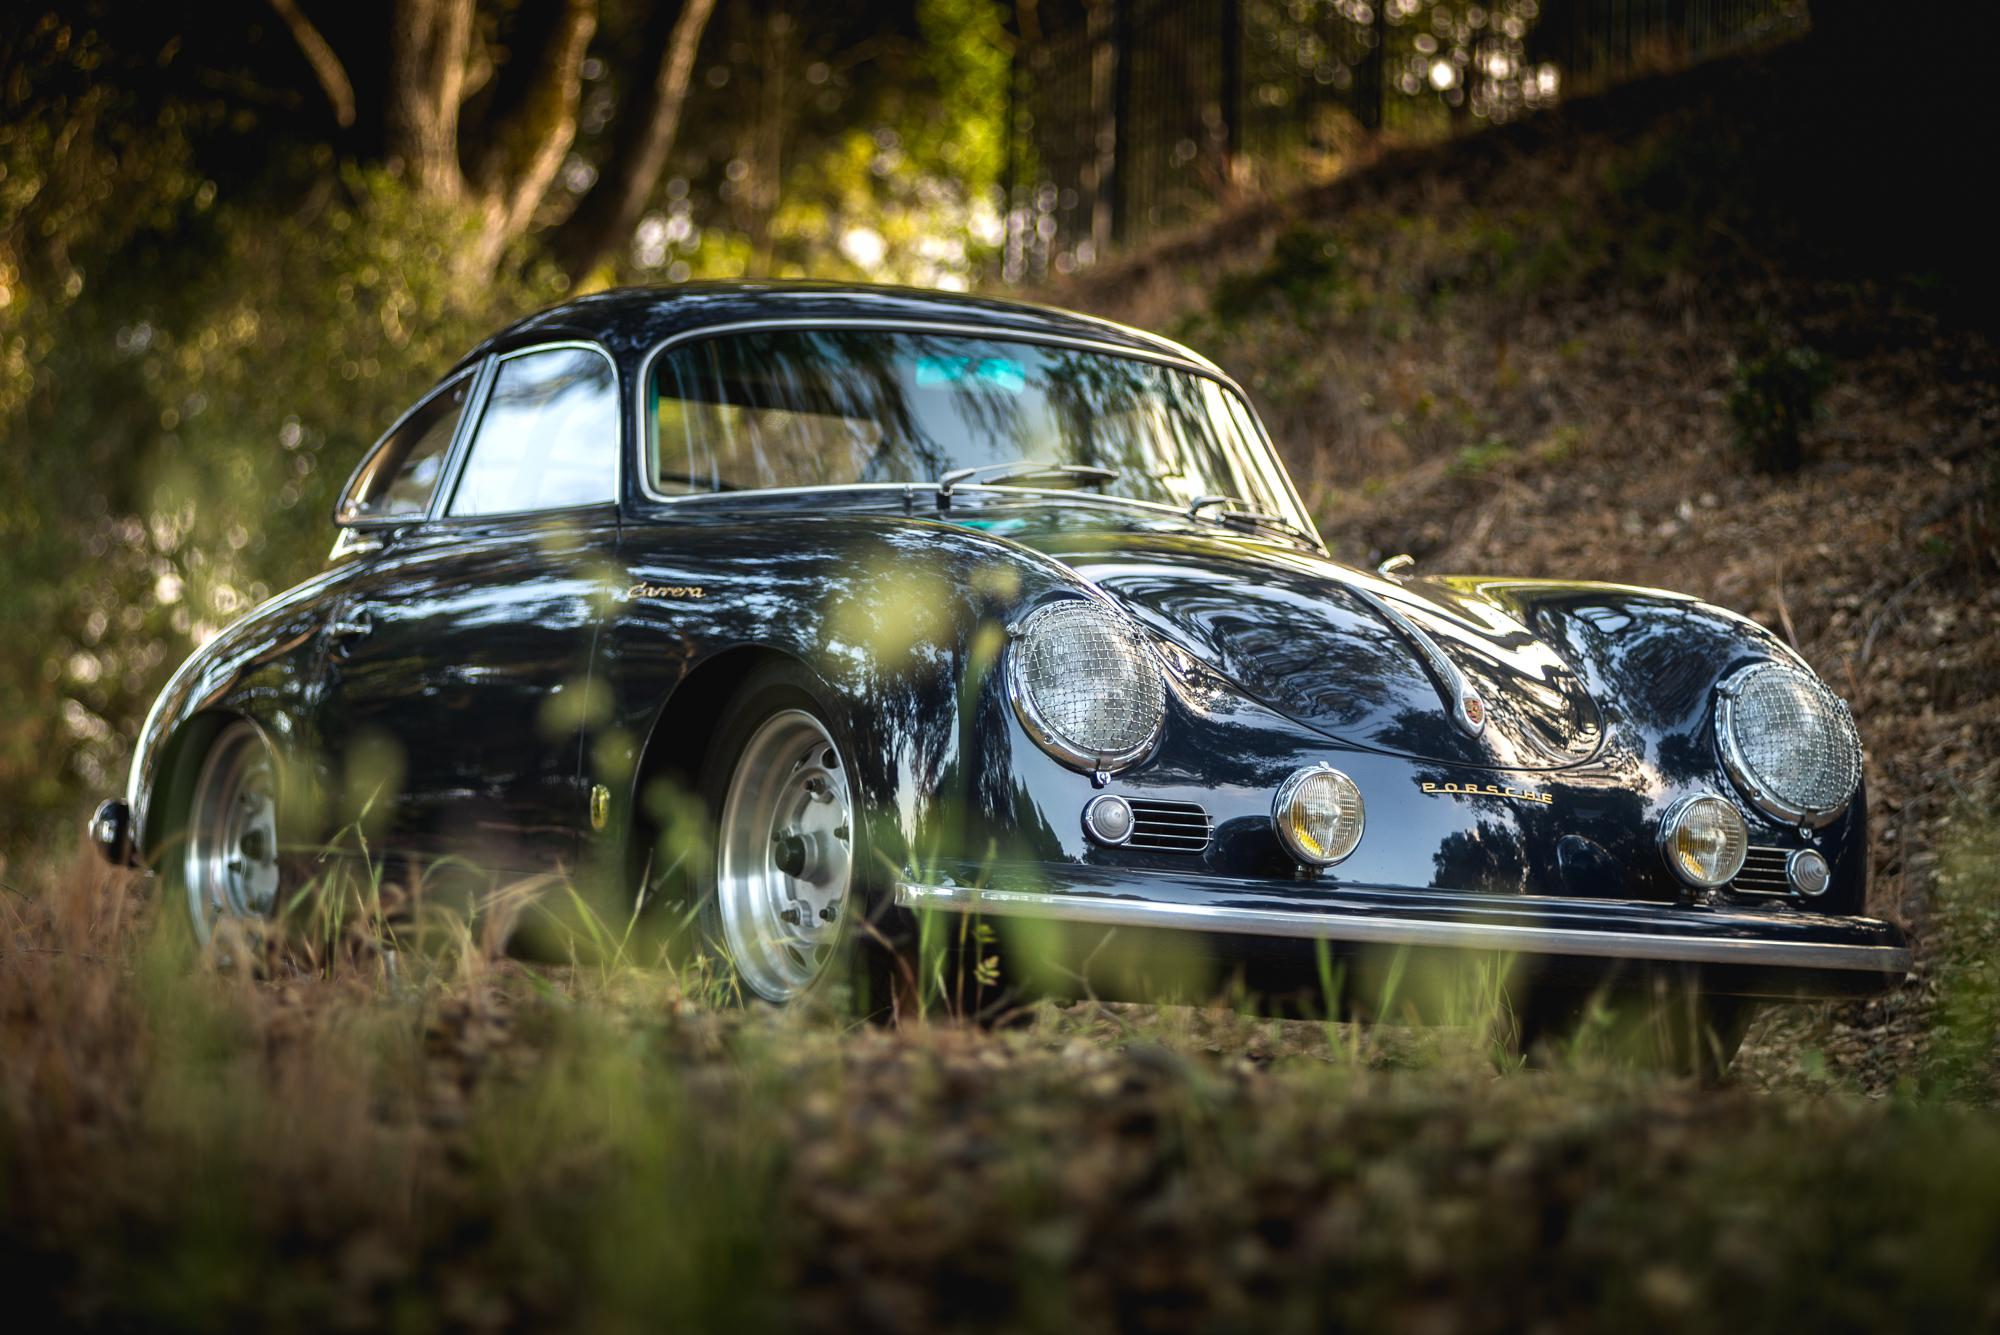 1956 Porsche 356A Carrera GS Coupe